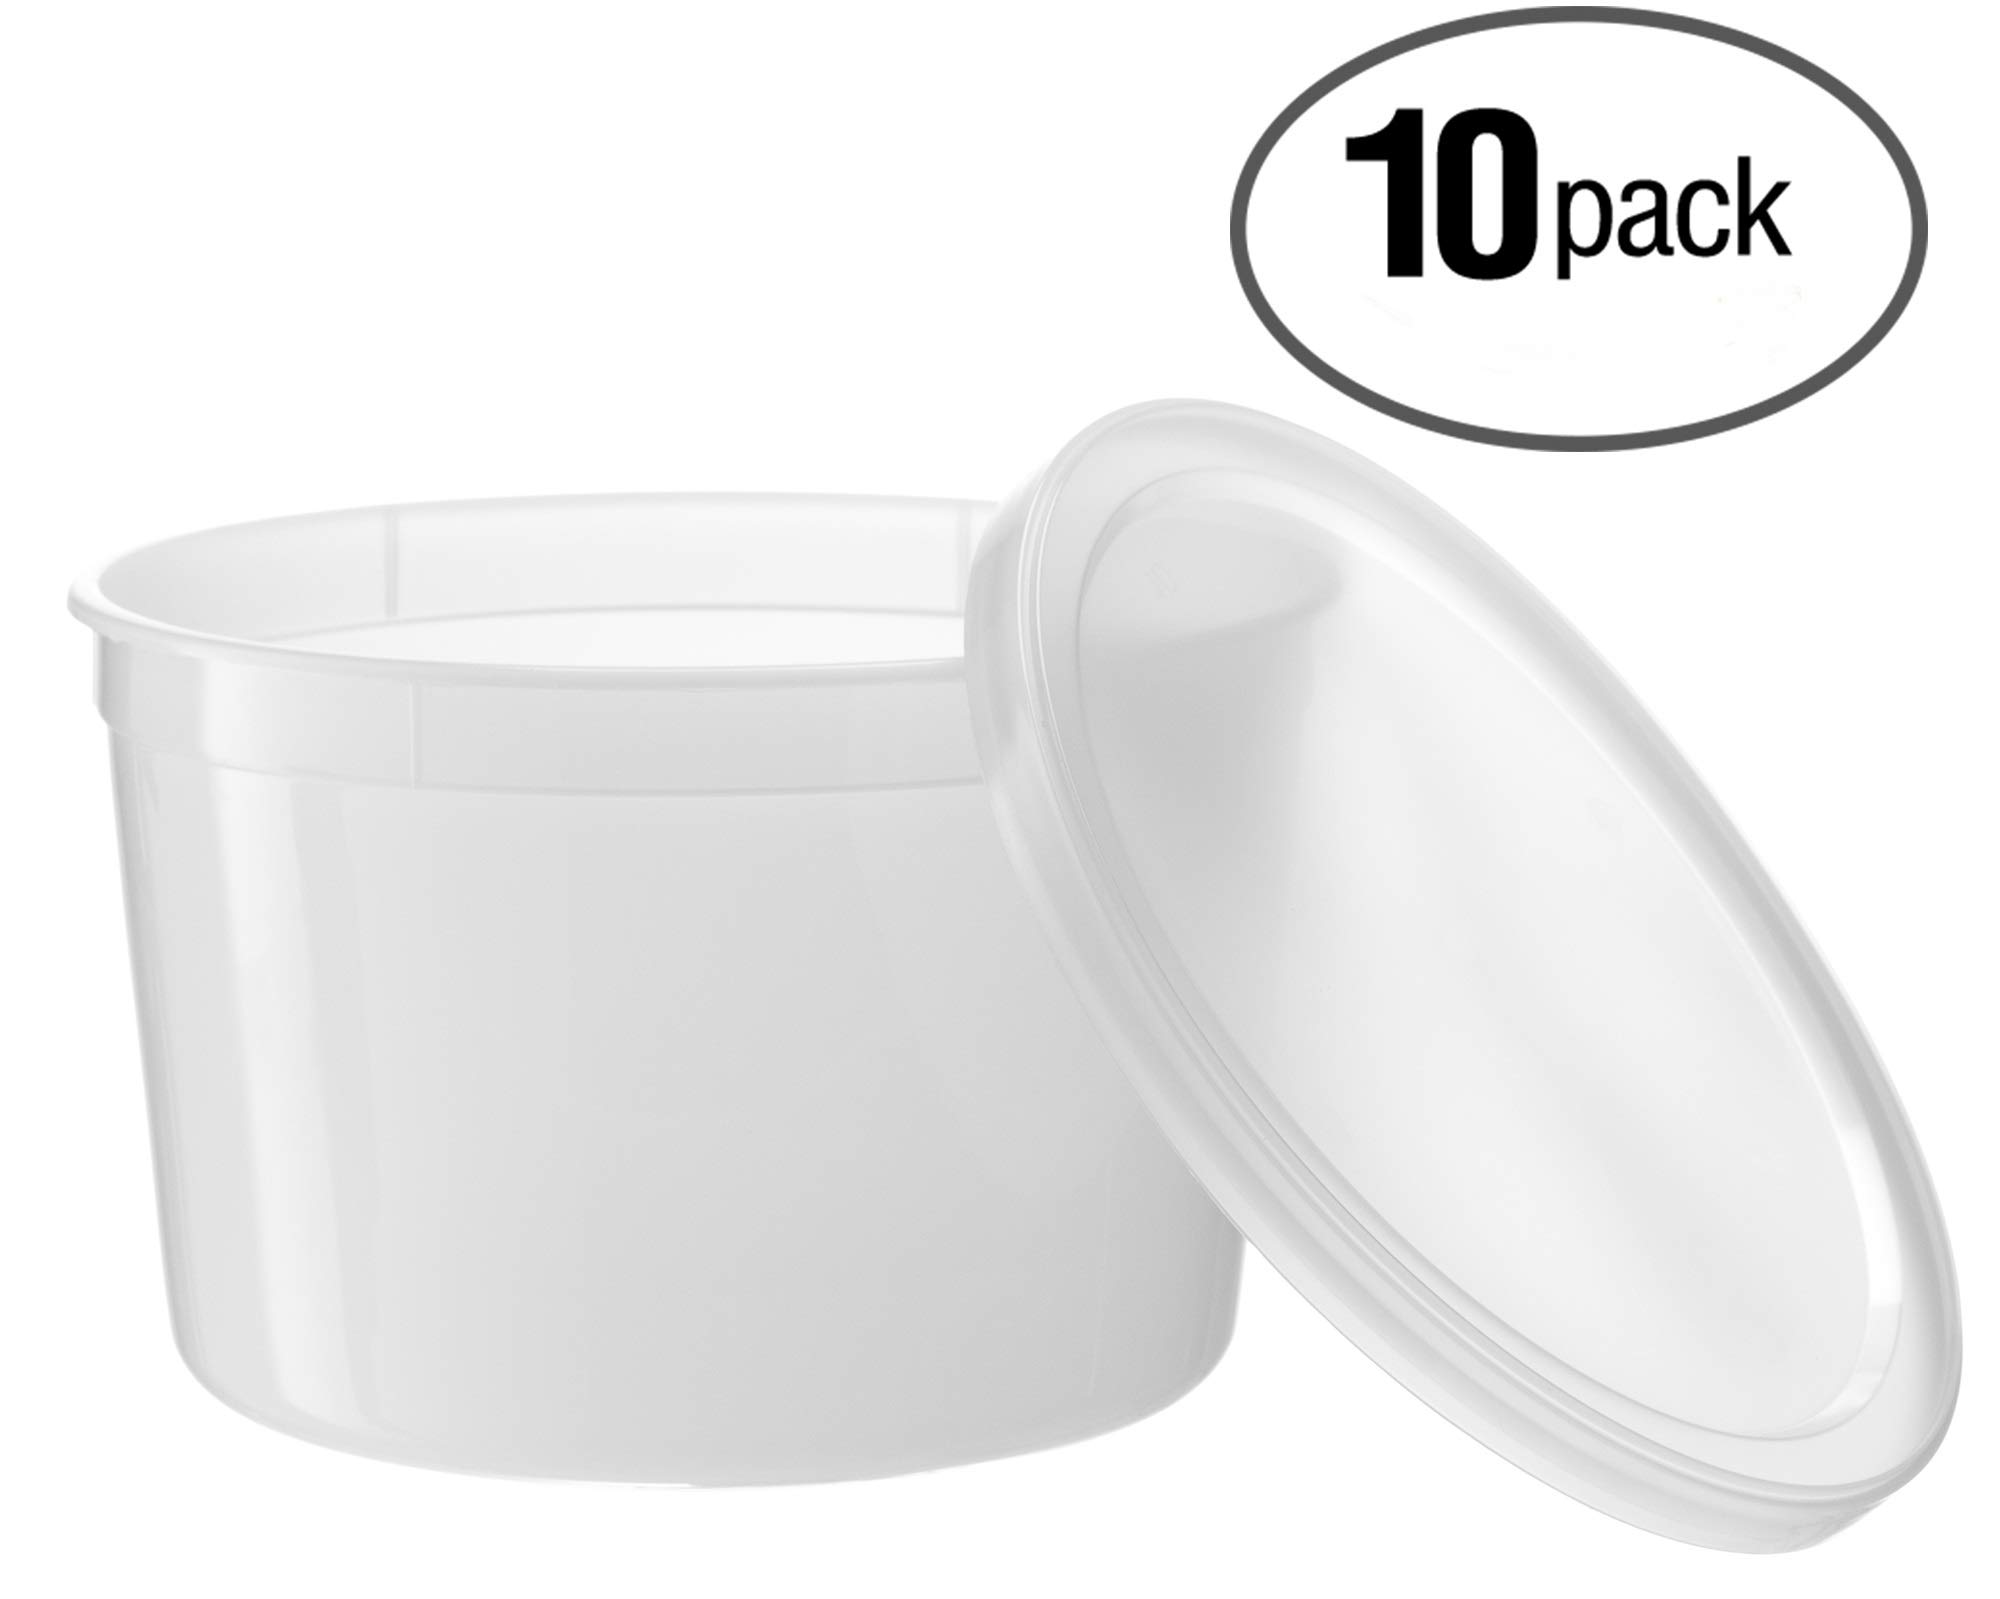 Basix 64 oz. Freezable Deli Food Storage Containers w/Lids - Package of 10 - Food Storage